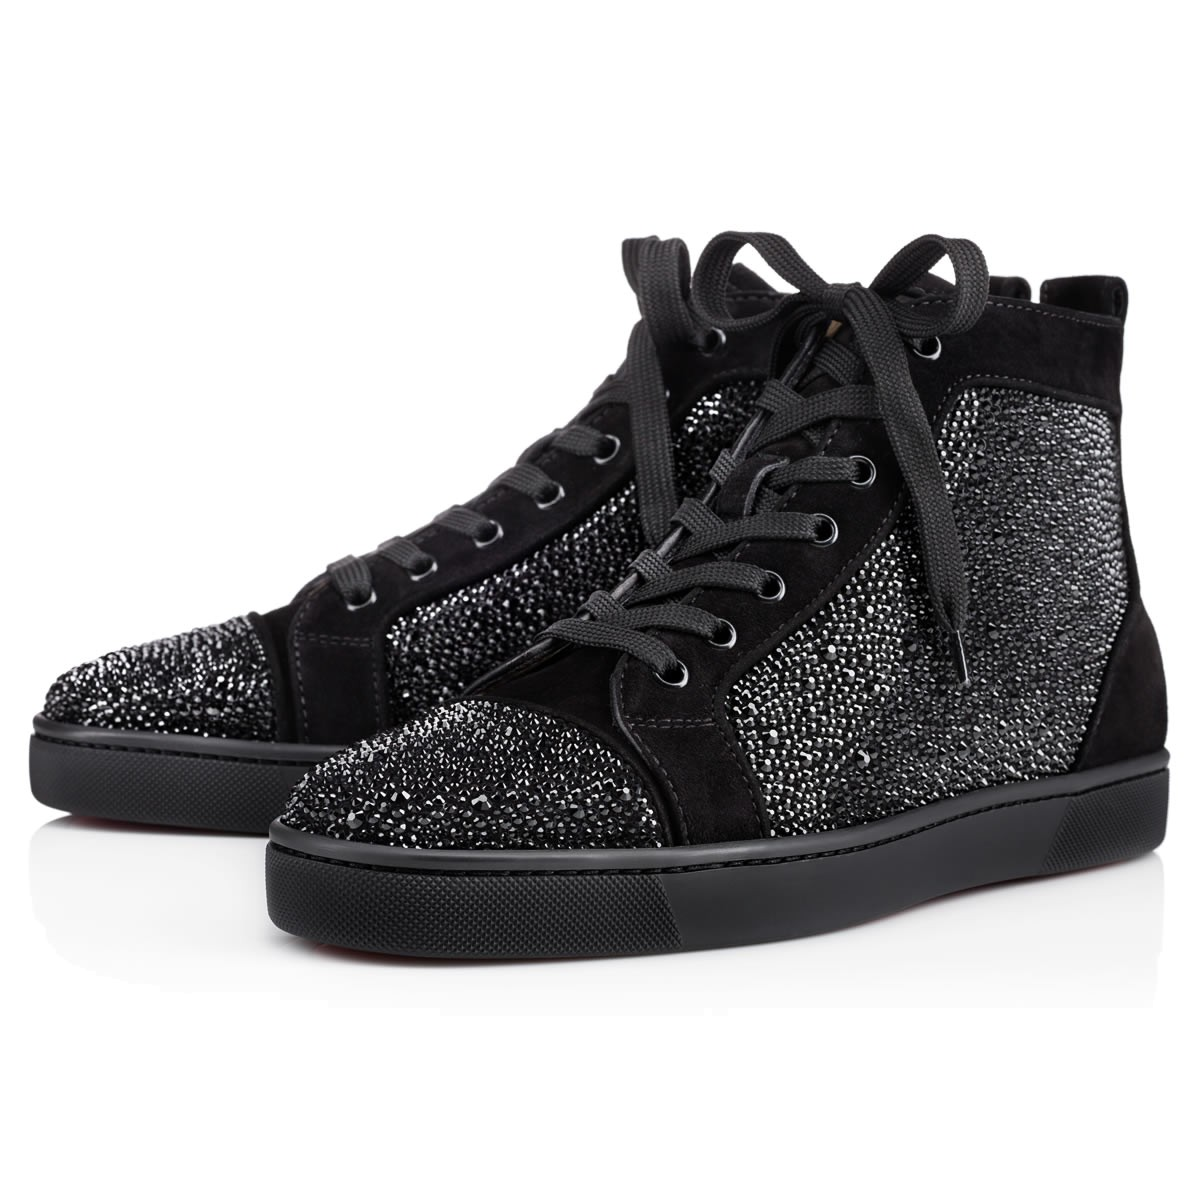 鞋履 - Louis Strass Men's Flat - Christian Louboutin